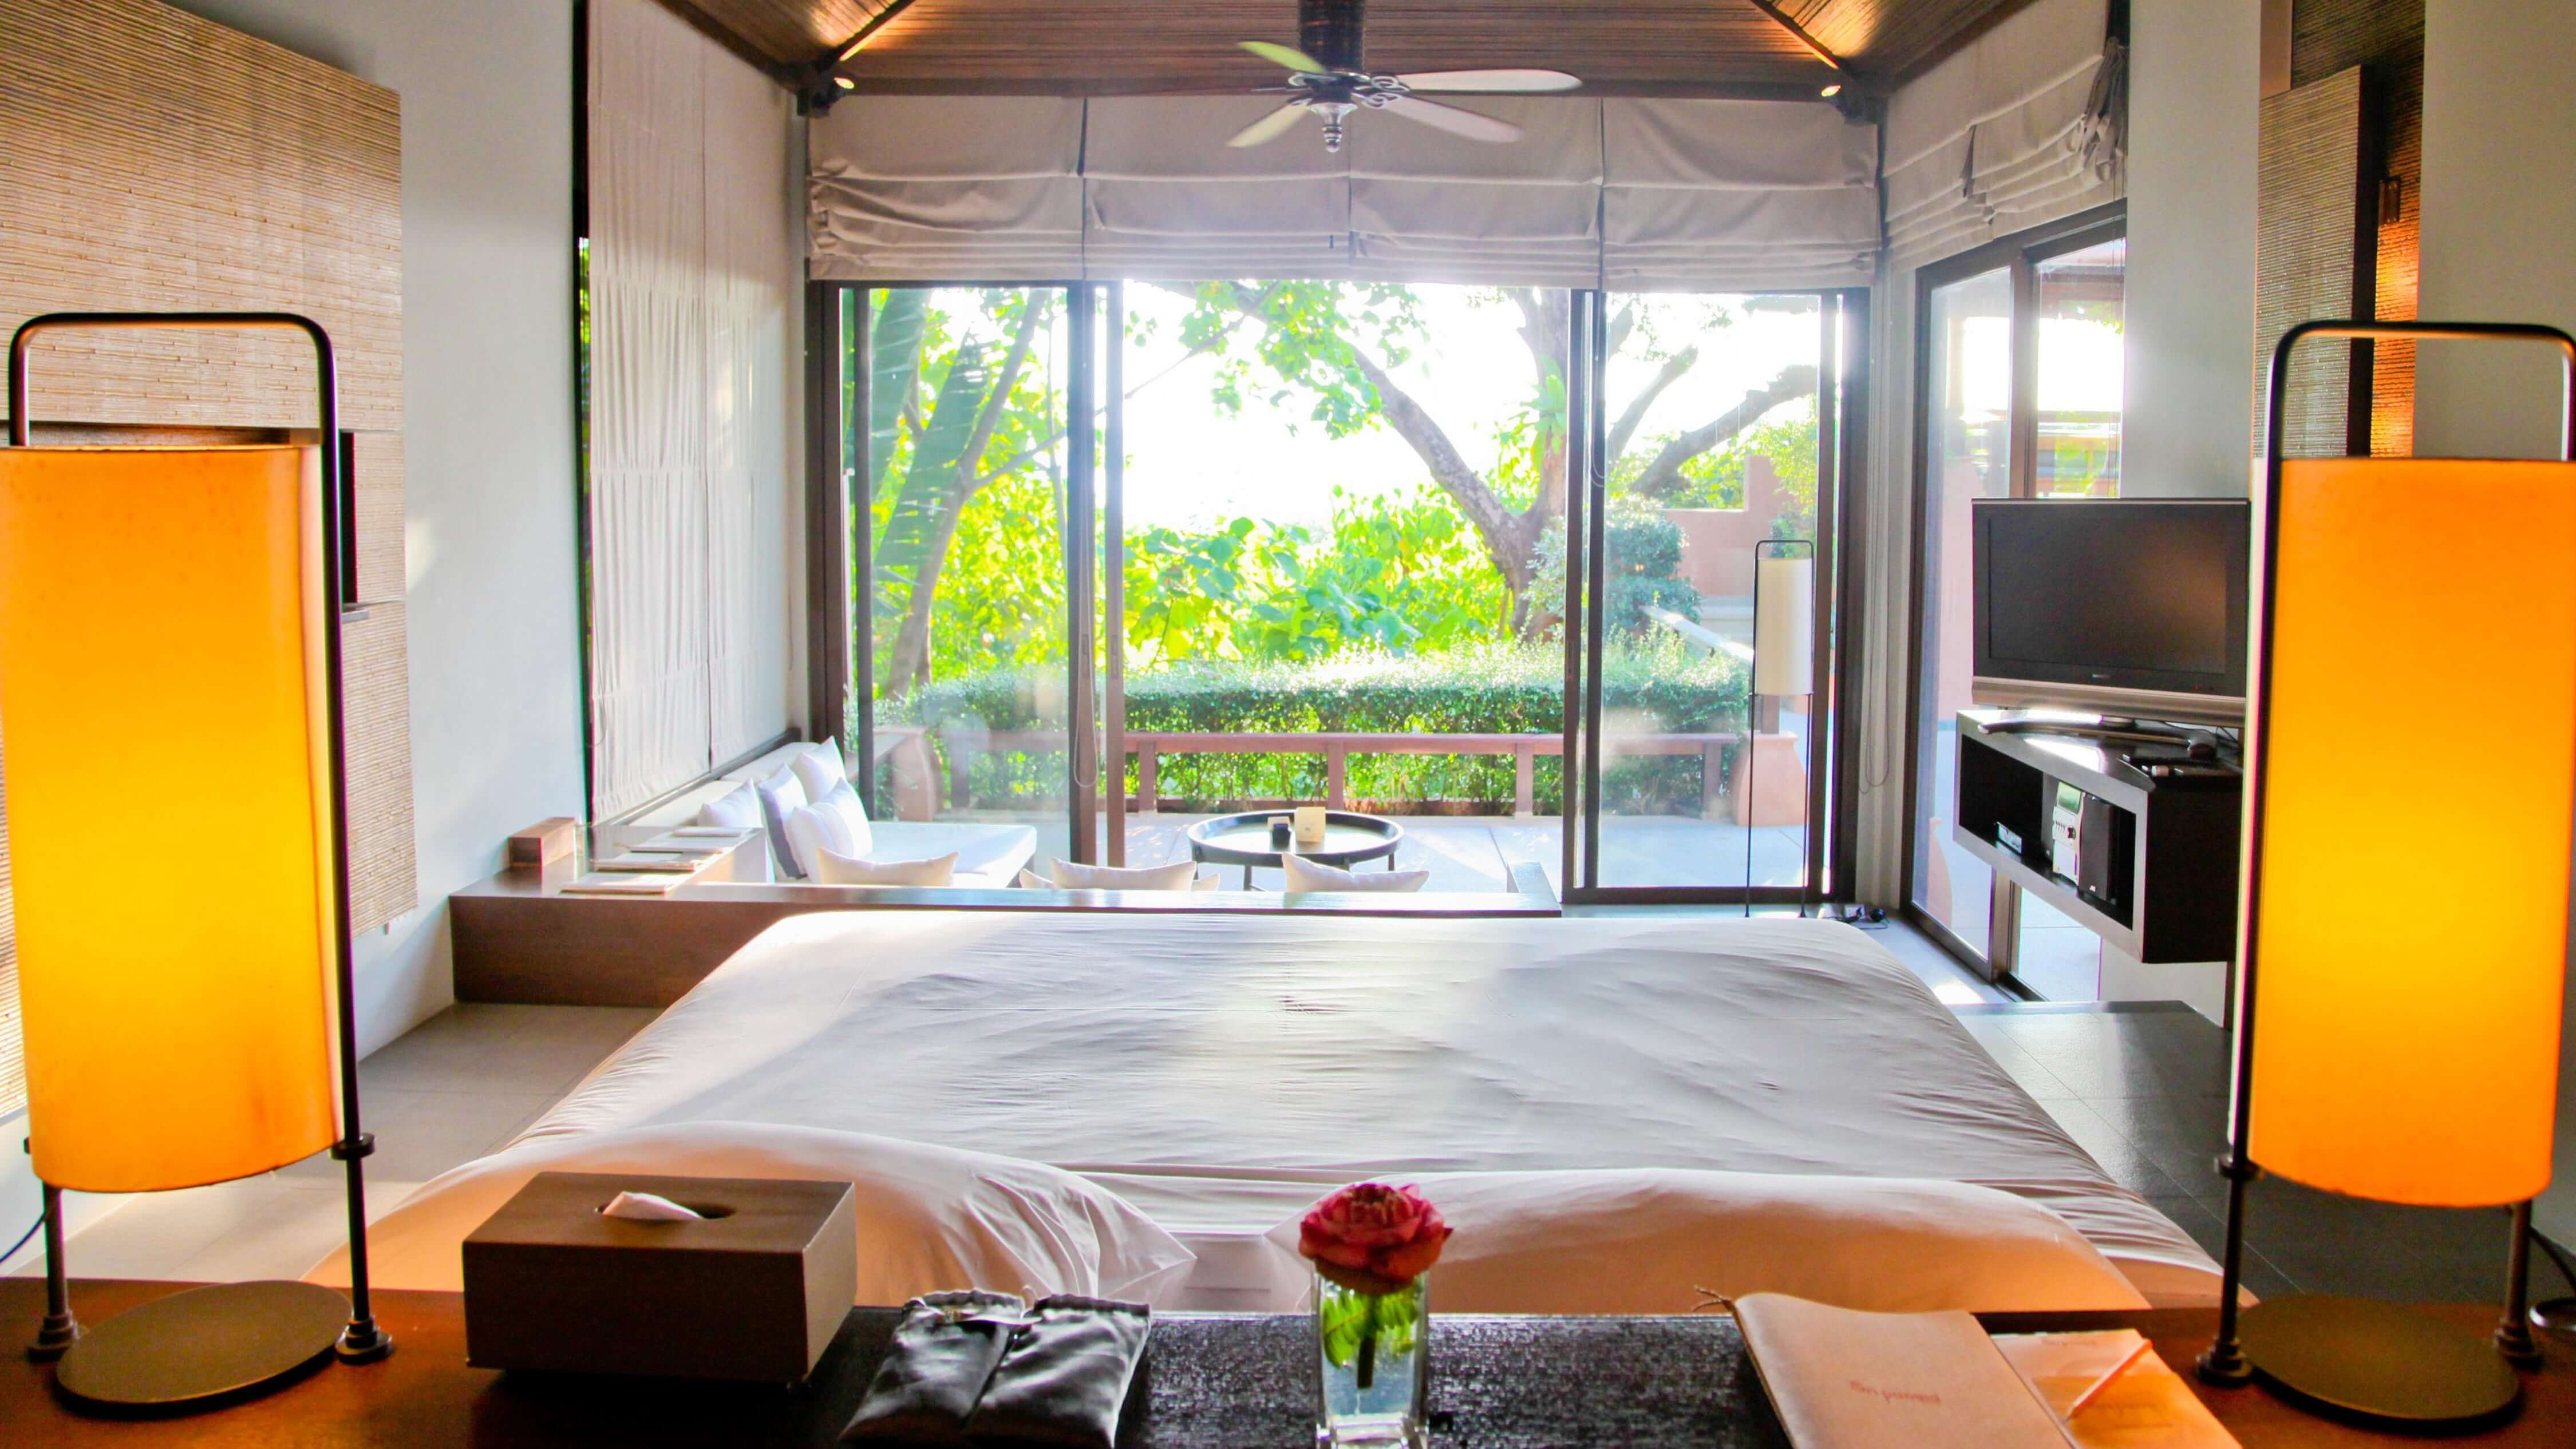 One bedroom luxury pool villa type b sri panwa phuket for 1br apartment design ideas